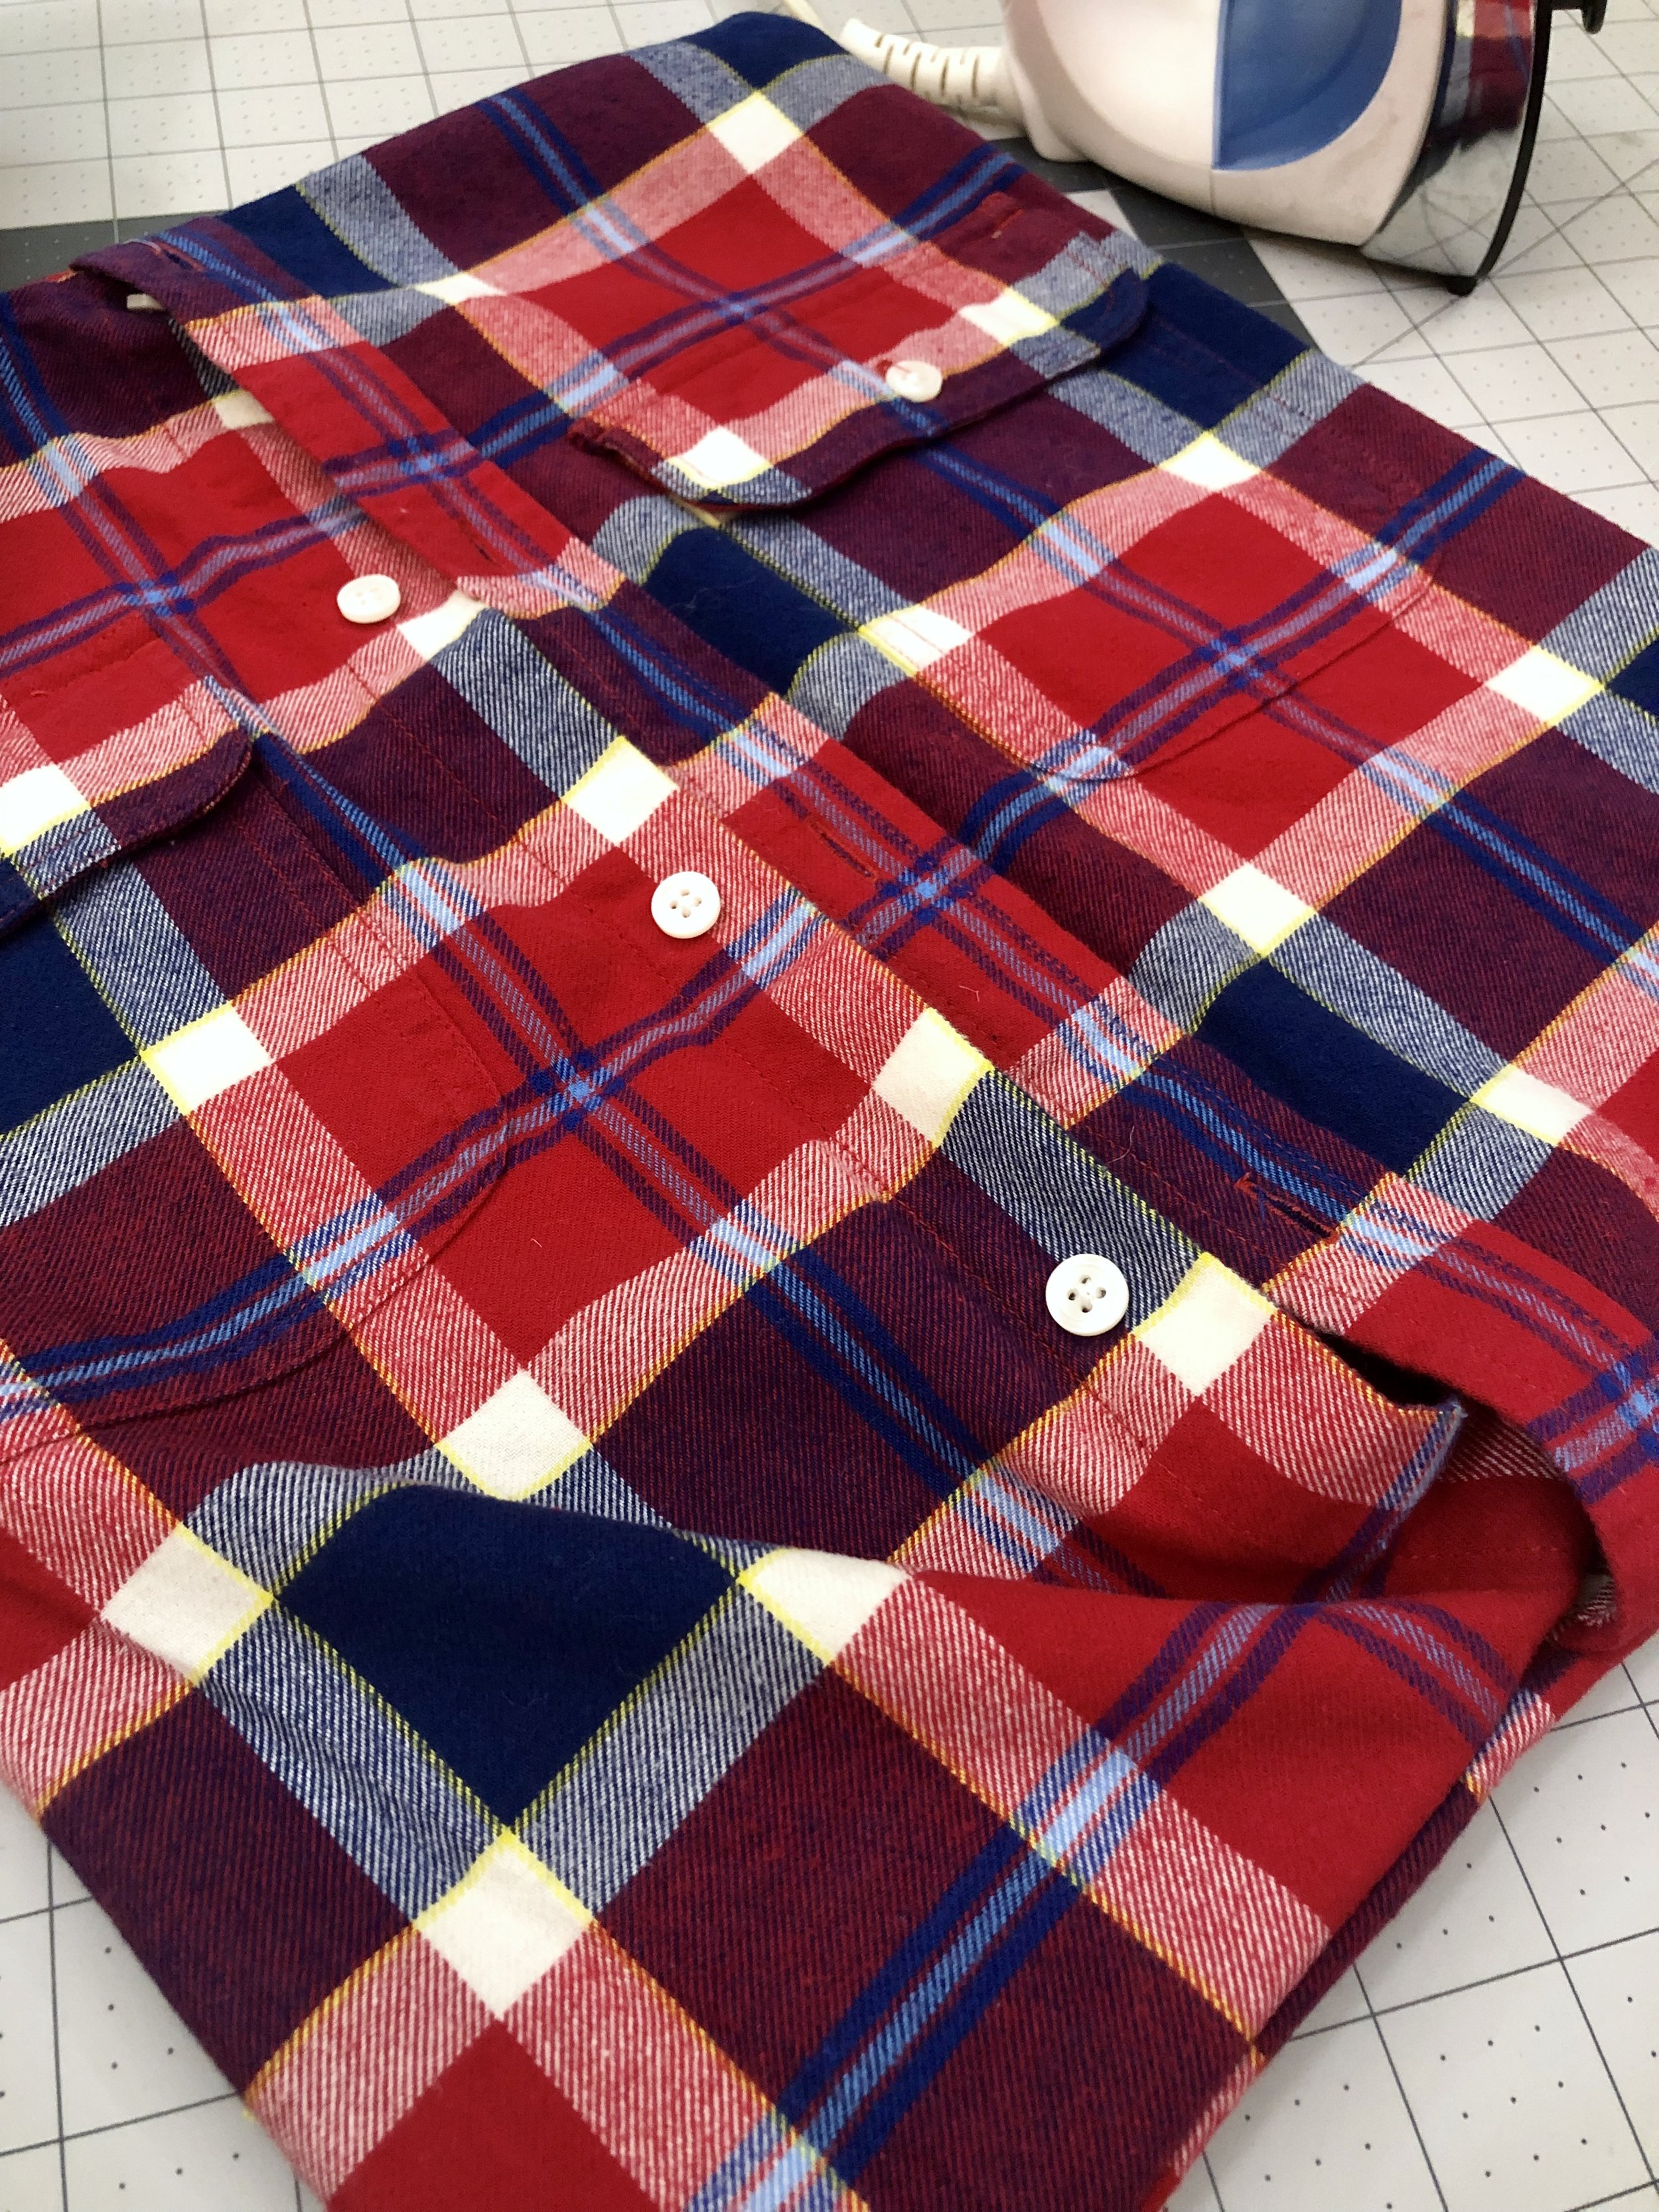 DIY Upcycled No Sew Pillow Cover! Take your old shirts and flannels and turn them into easy no sew pillow covers.  #flannelshirt #buttondown #keepsake #easydiy #nosew #heatbond #easycraft #pillowcases #pillowcoveres